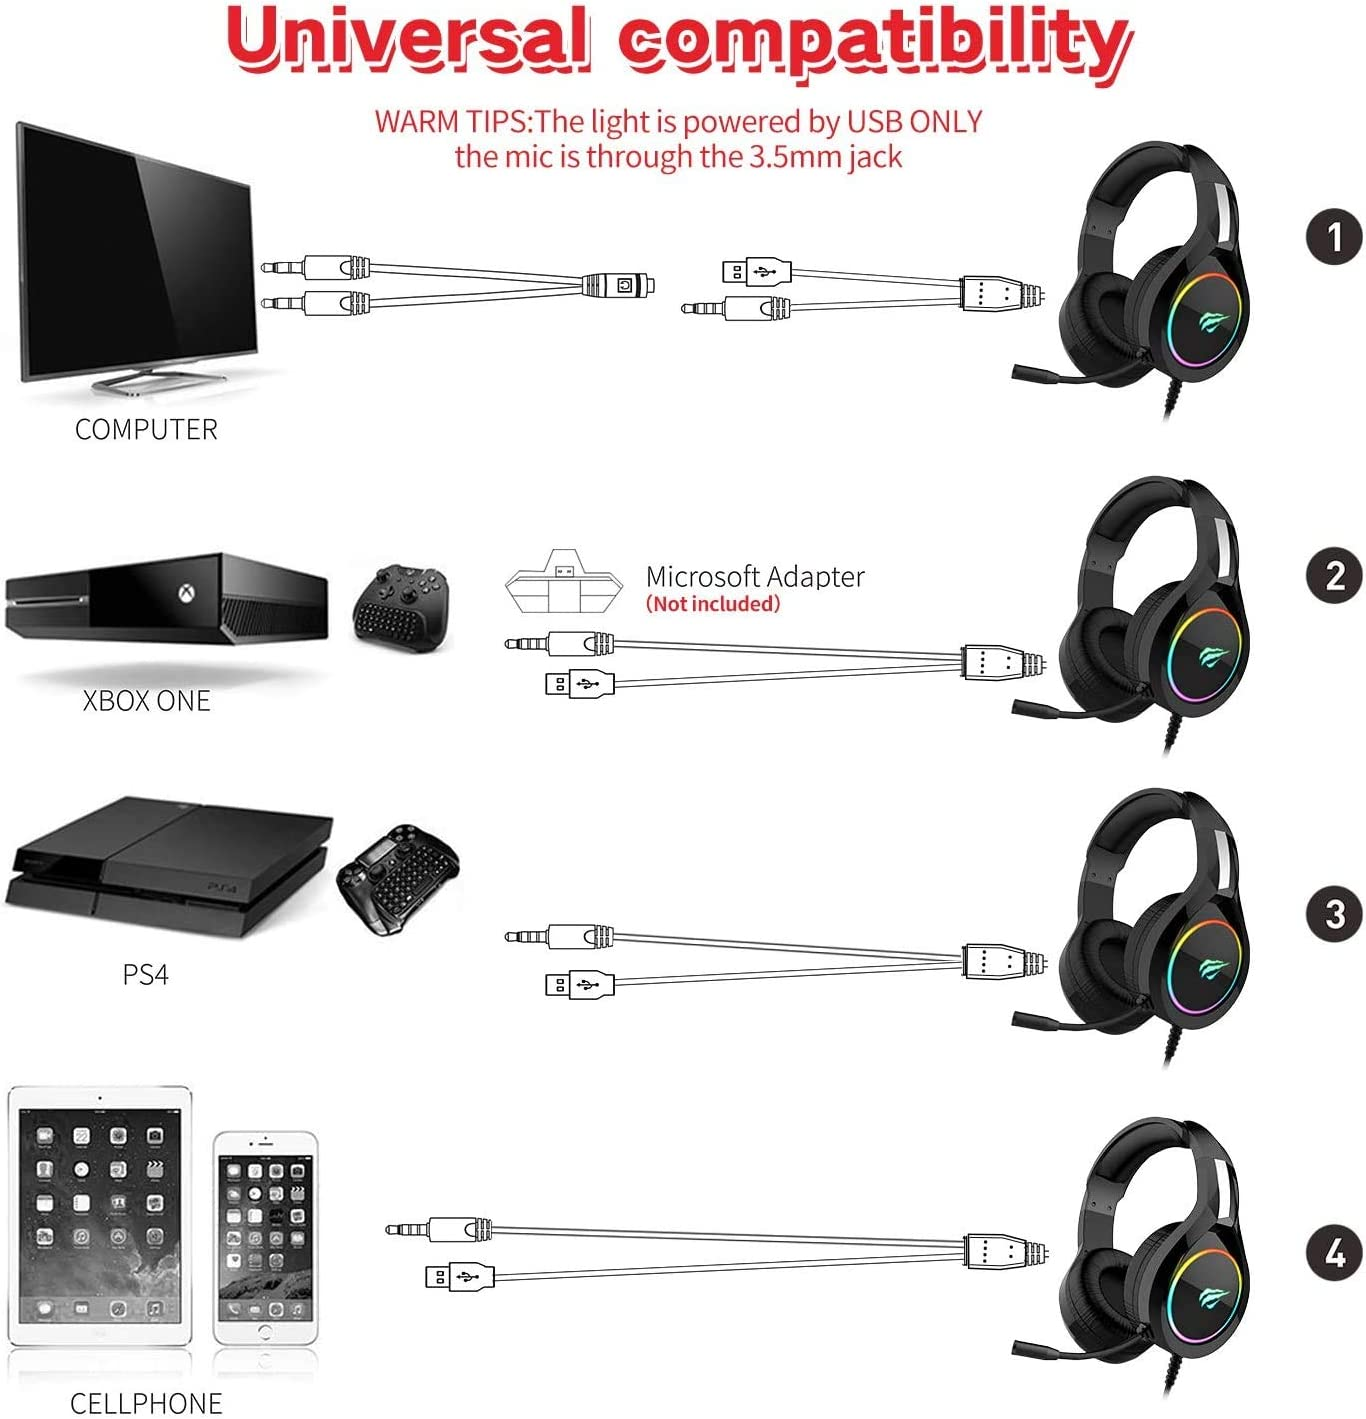 havit RGB Wired Gaming Headset PC USB 3.5mm XBOX PS4 Headsets with 50MM Driver, Surround Sound & HD Microphone, XBOX One Gaming Overear Headphones